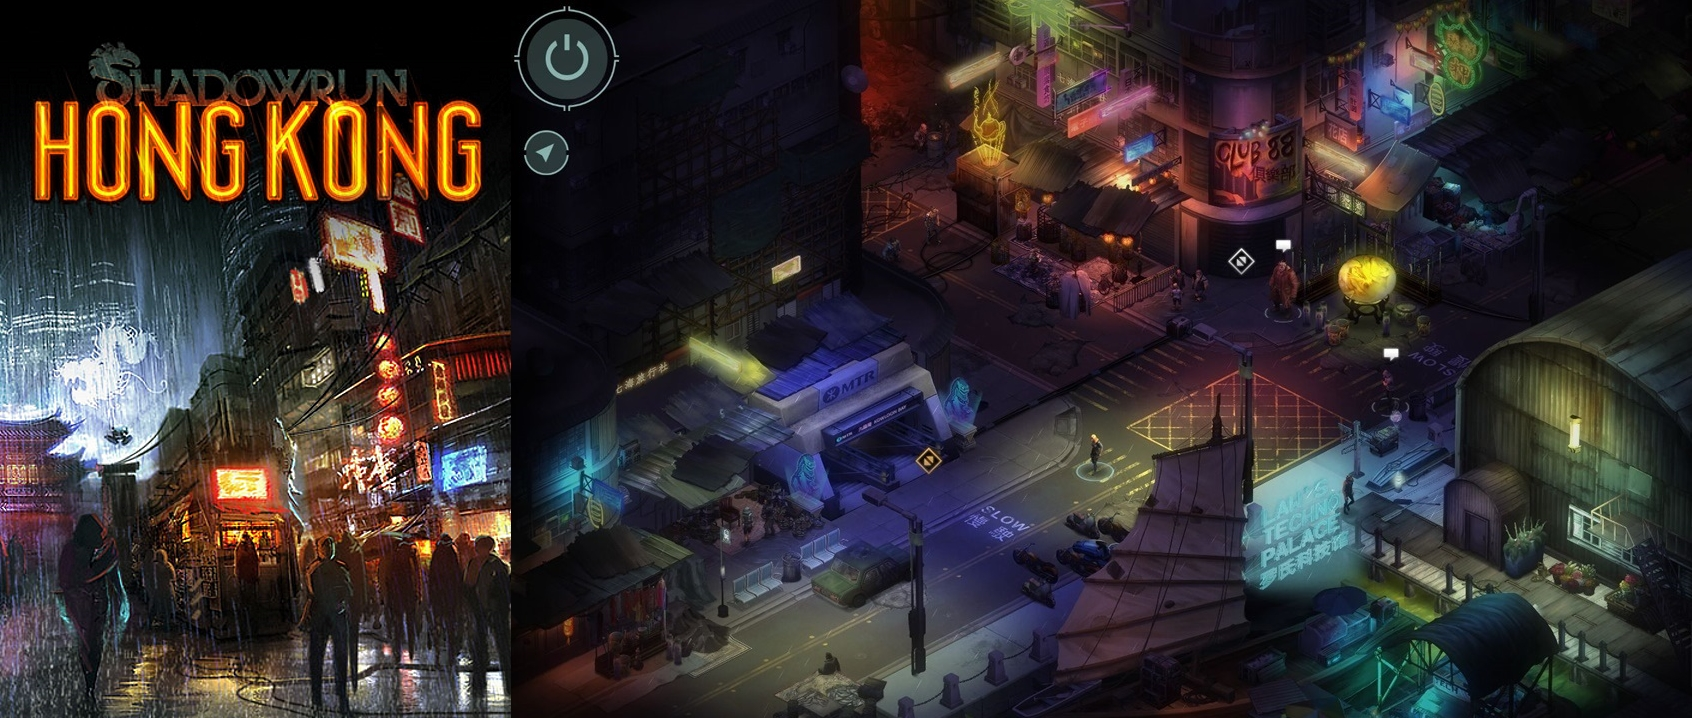 Shadowrun-Hong-Kong-cyberpunk-game-gameplay-recensione